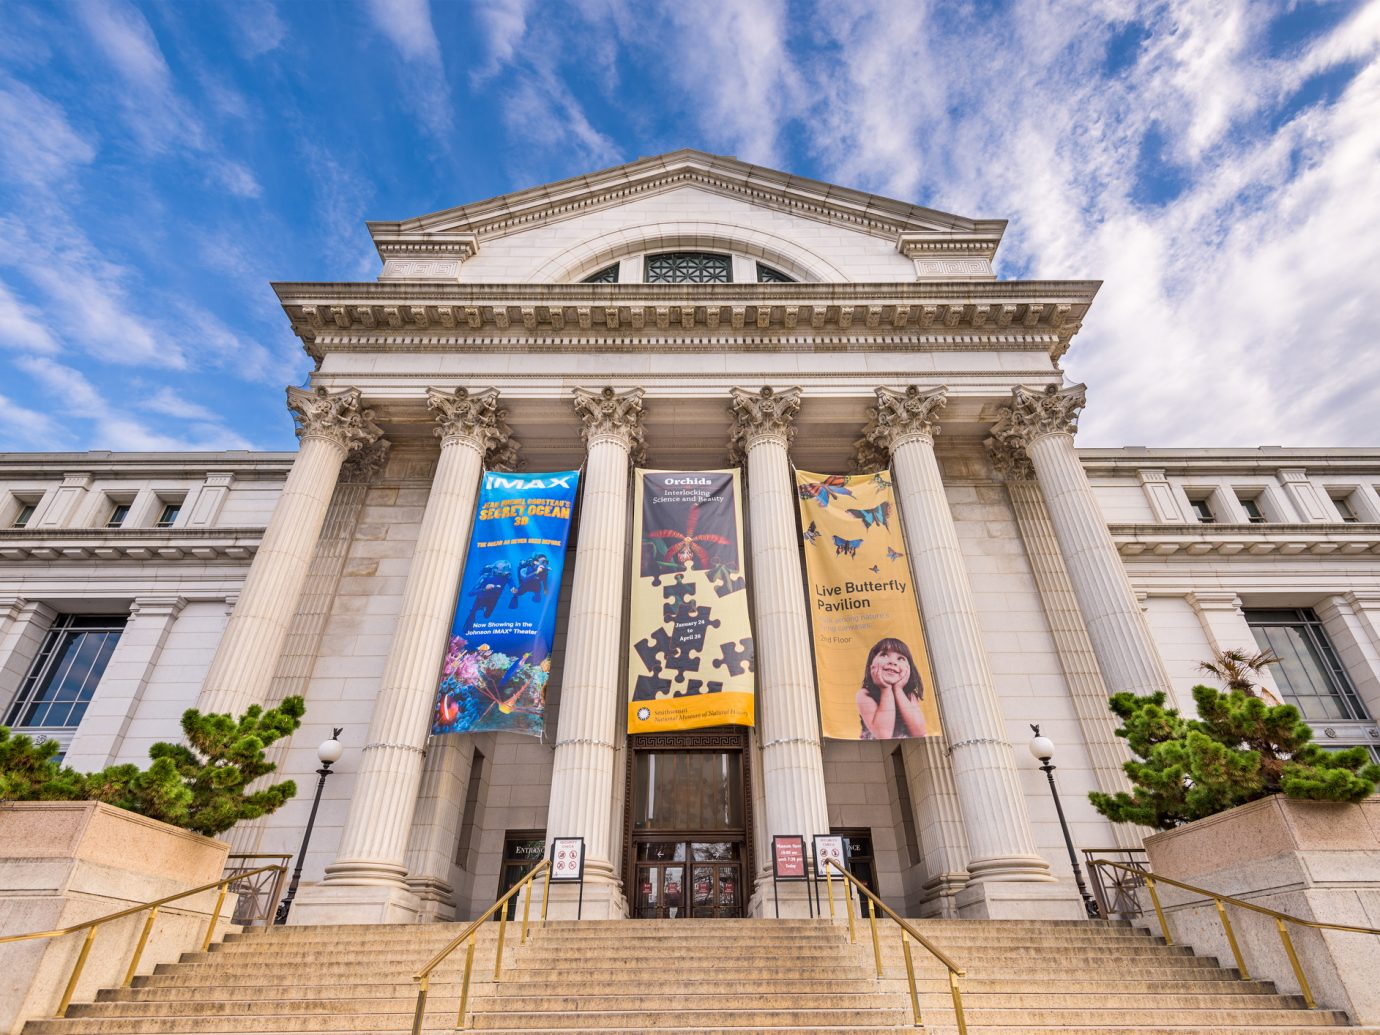 Washington DC, USA - April 12, 2015: Banners hang at the entrance to the National Museum of Natural History in DC. It is considered the second most visited museum in the world.